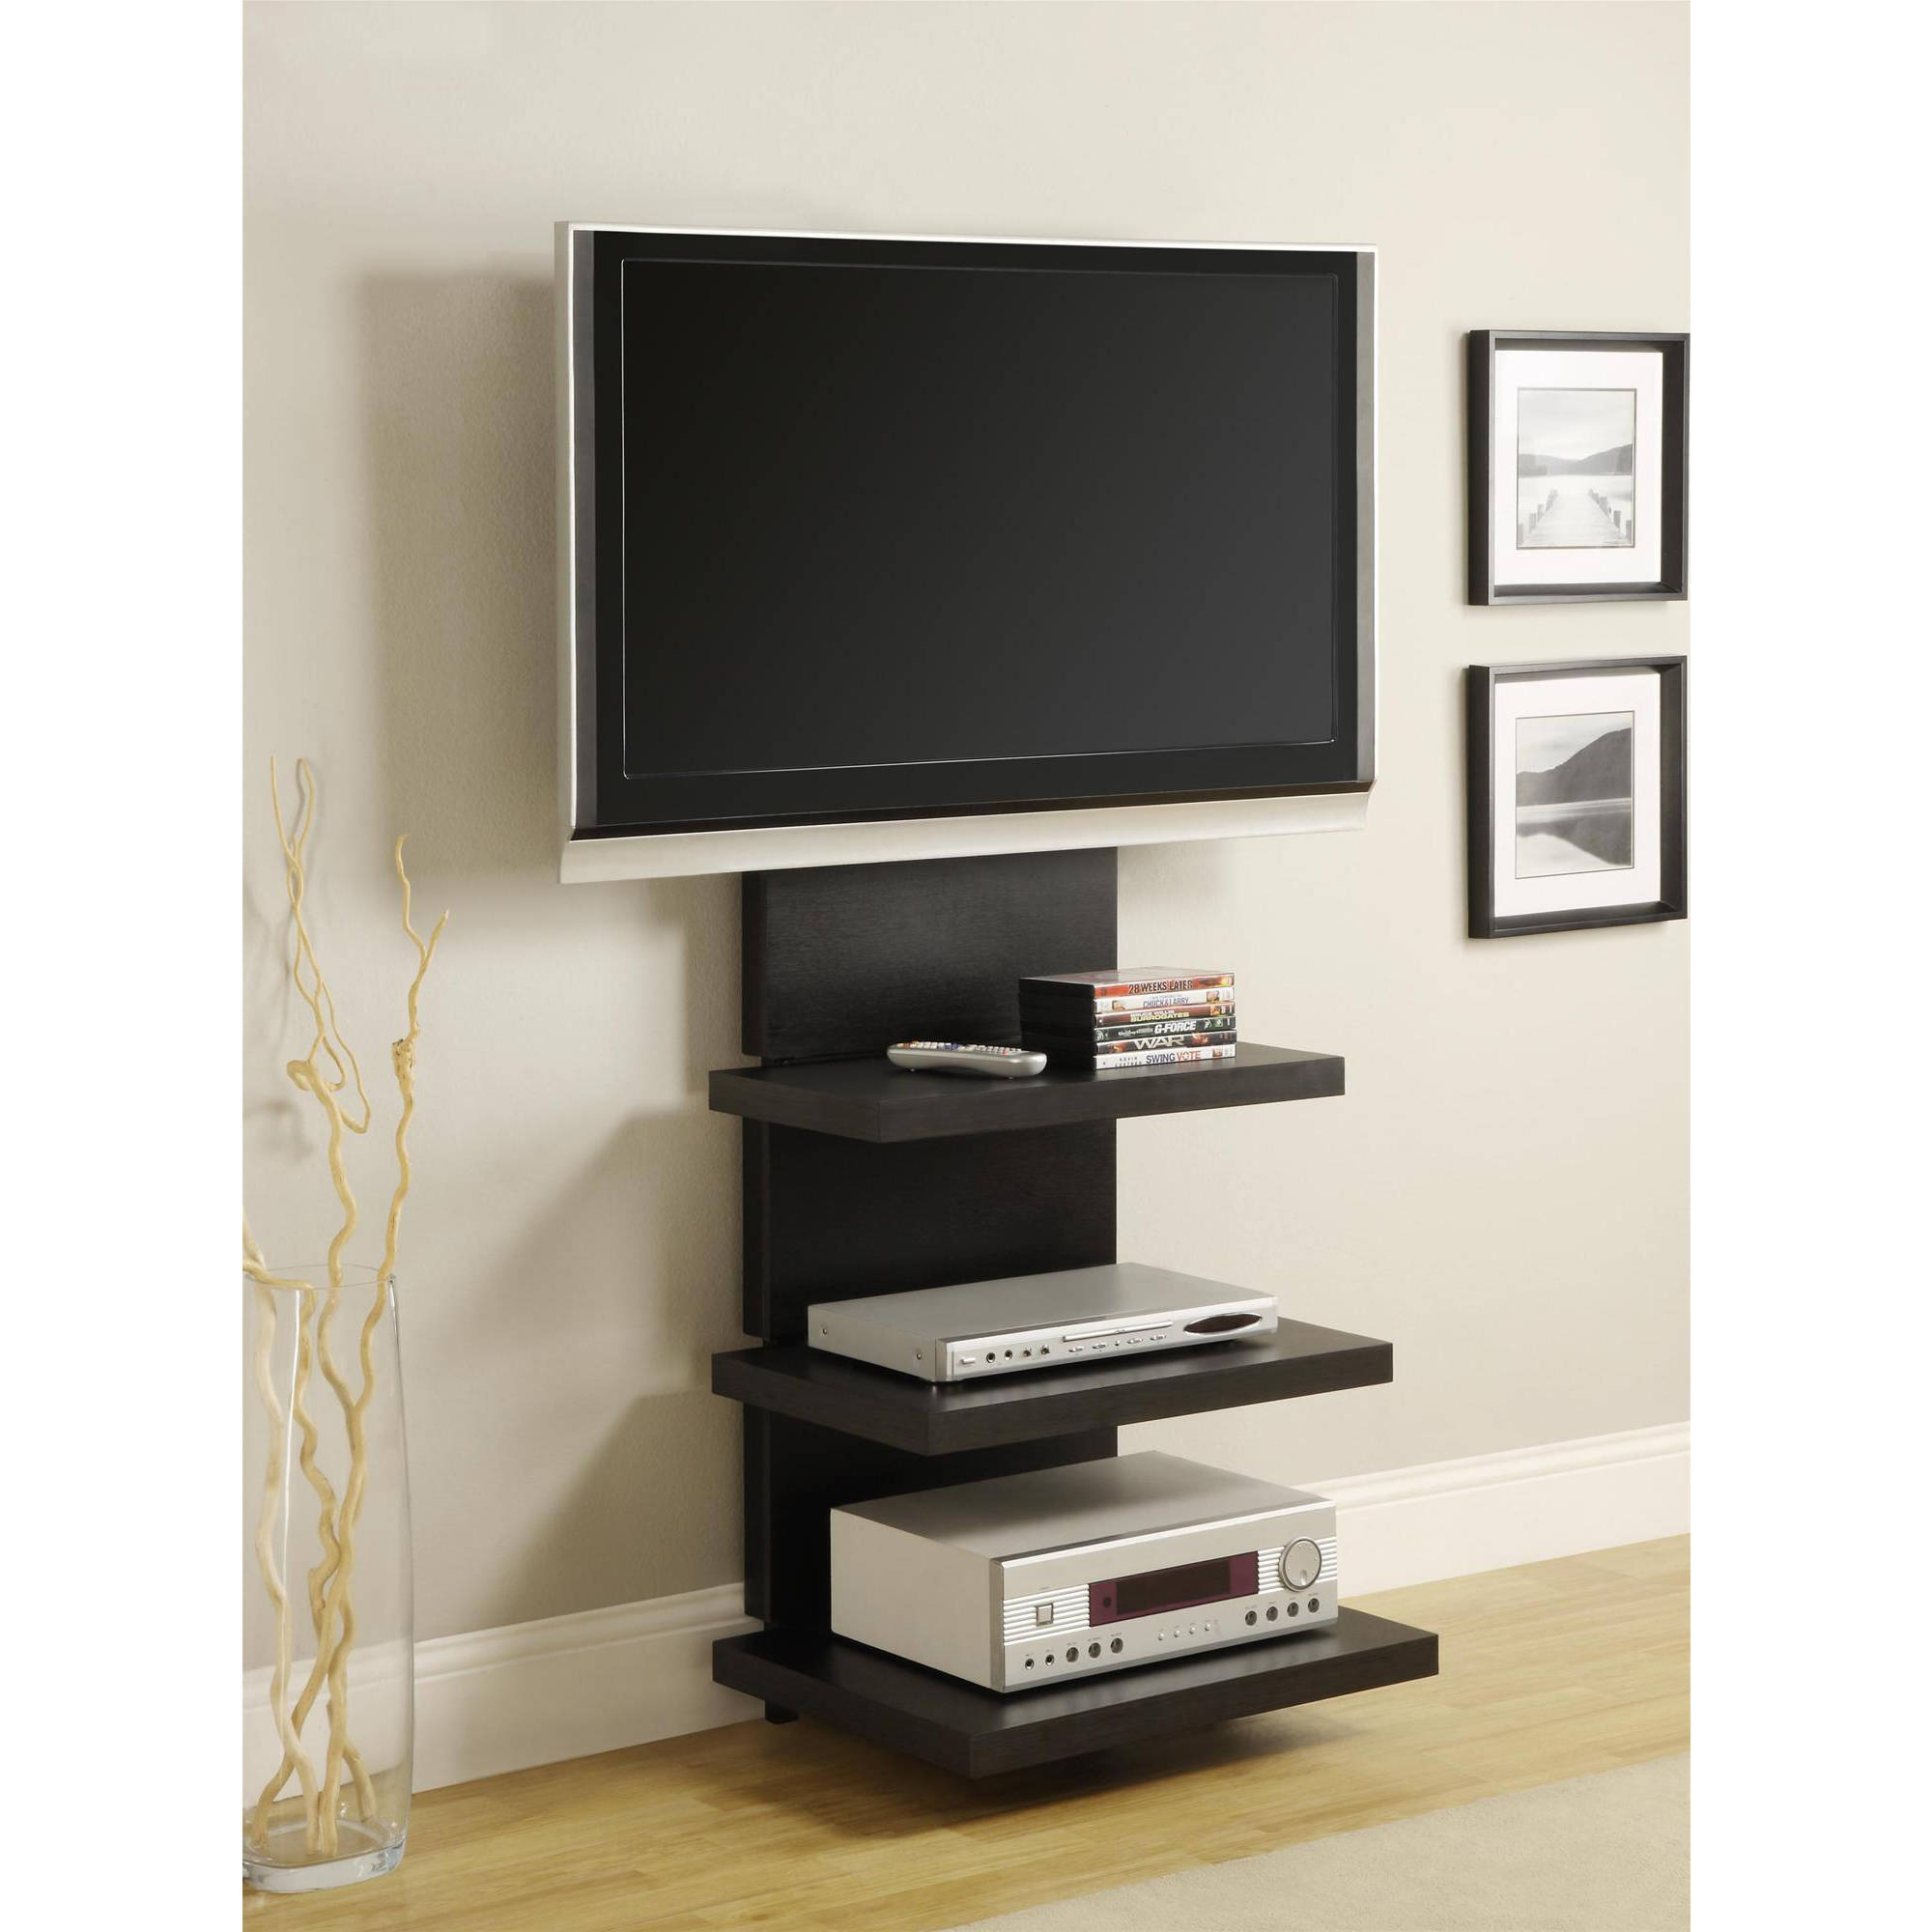 """Ameriwood Home Elevation AltraMount TV Stand for TVs up to 60"""" wide, Black"""